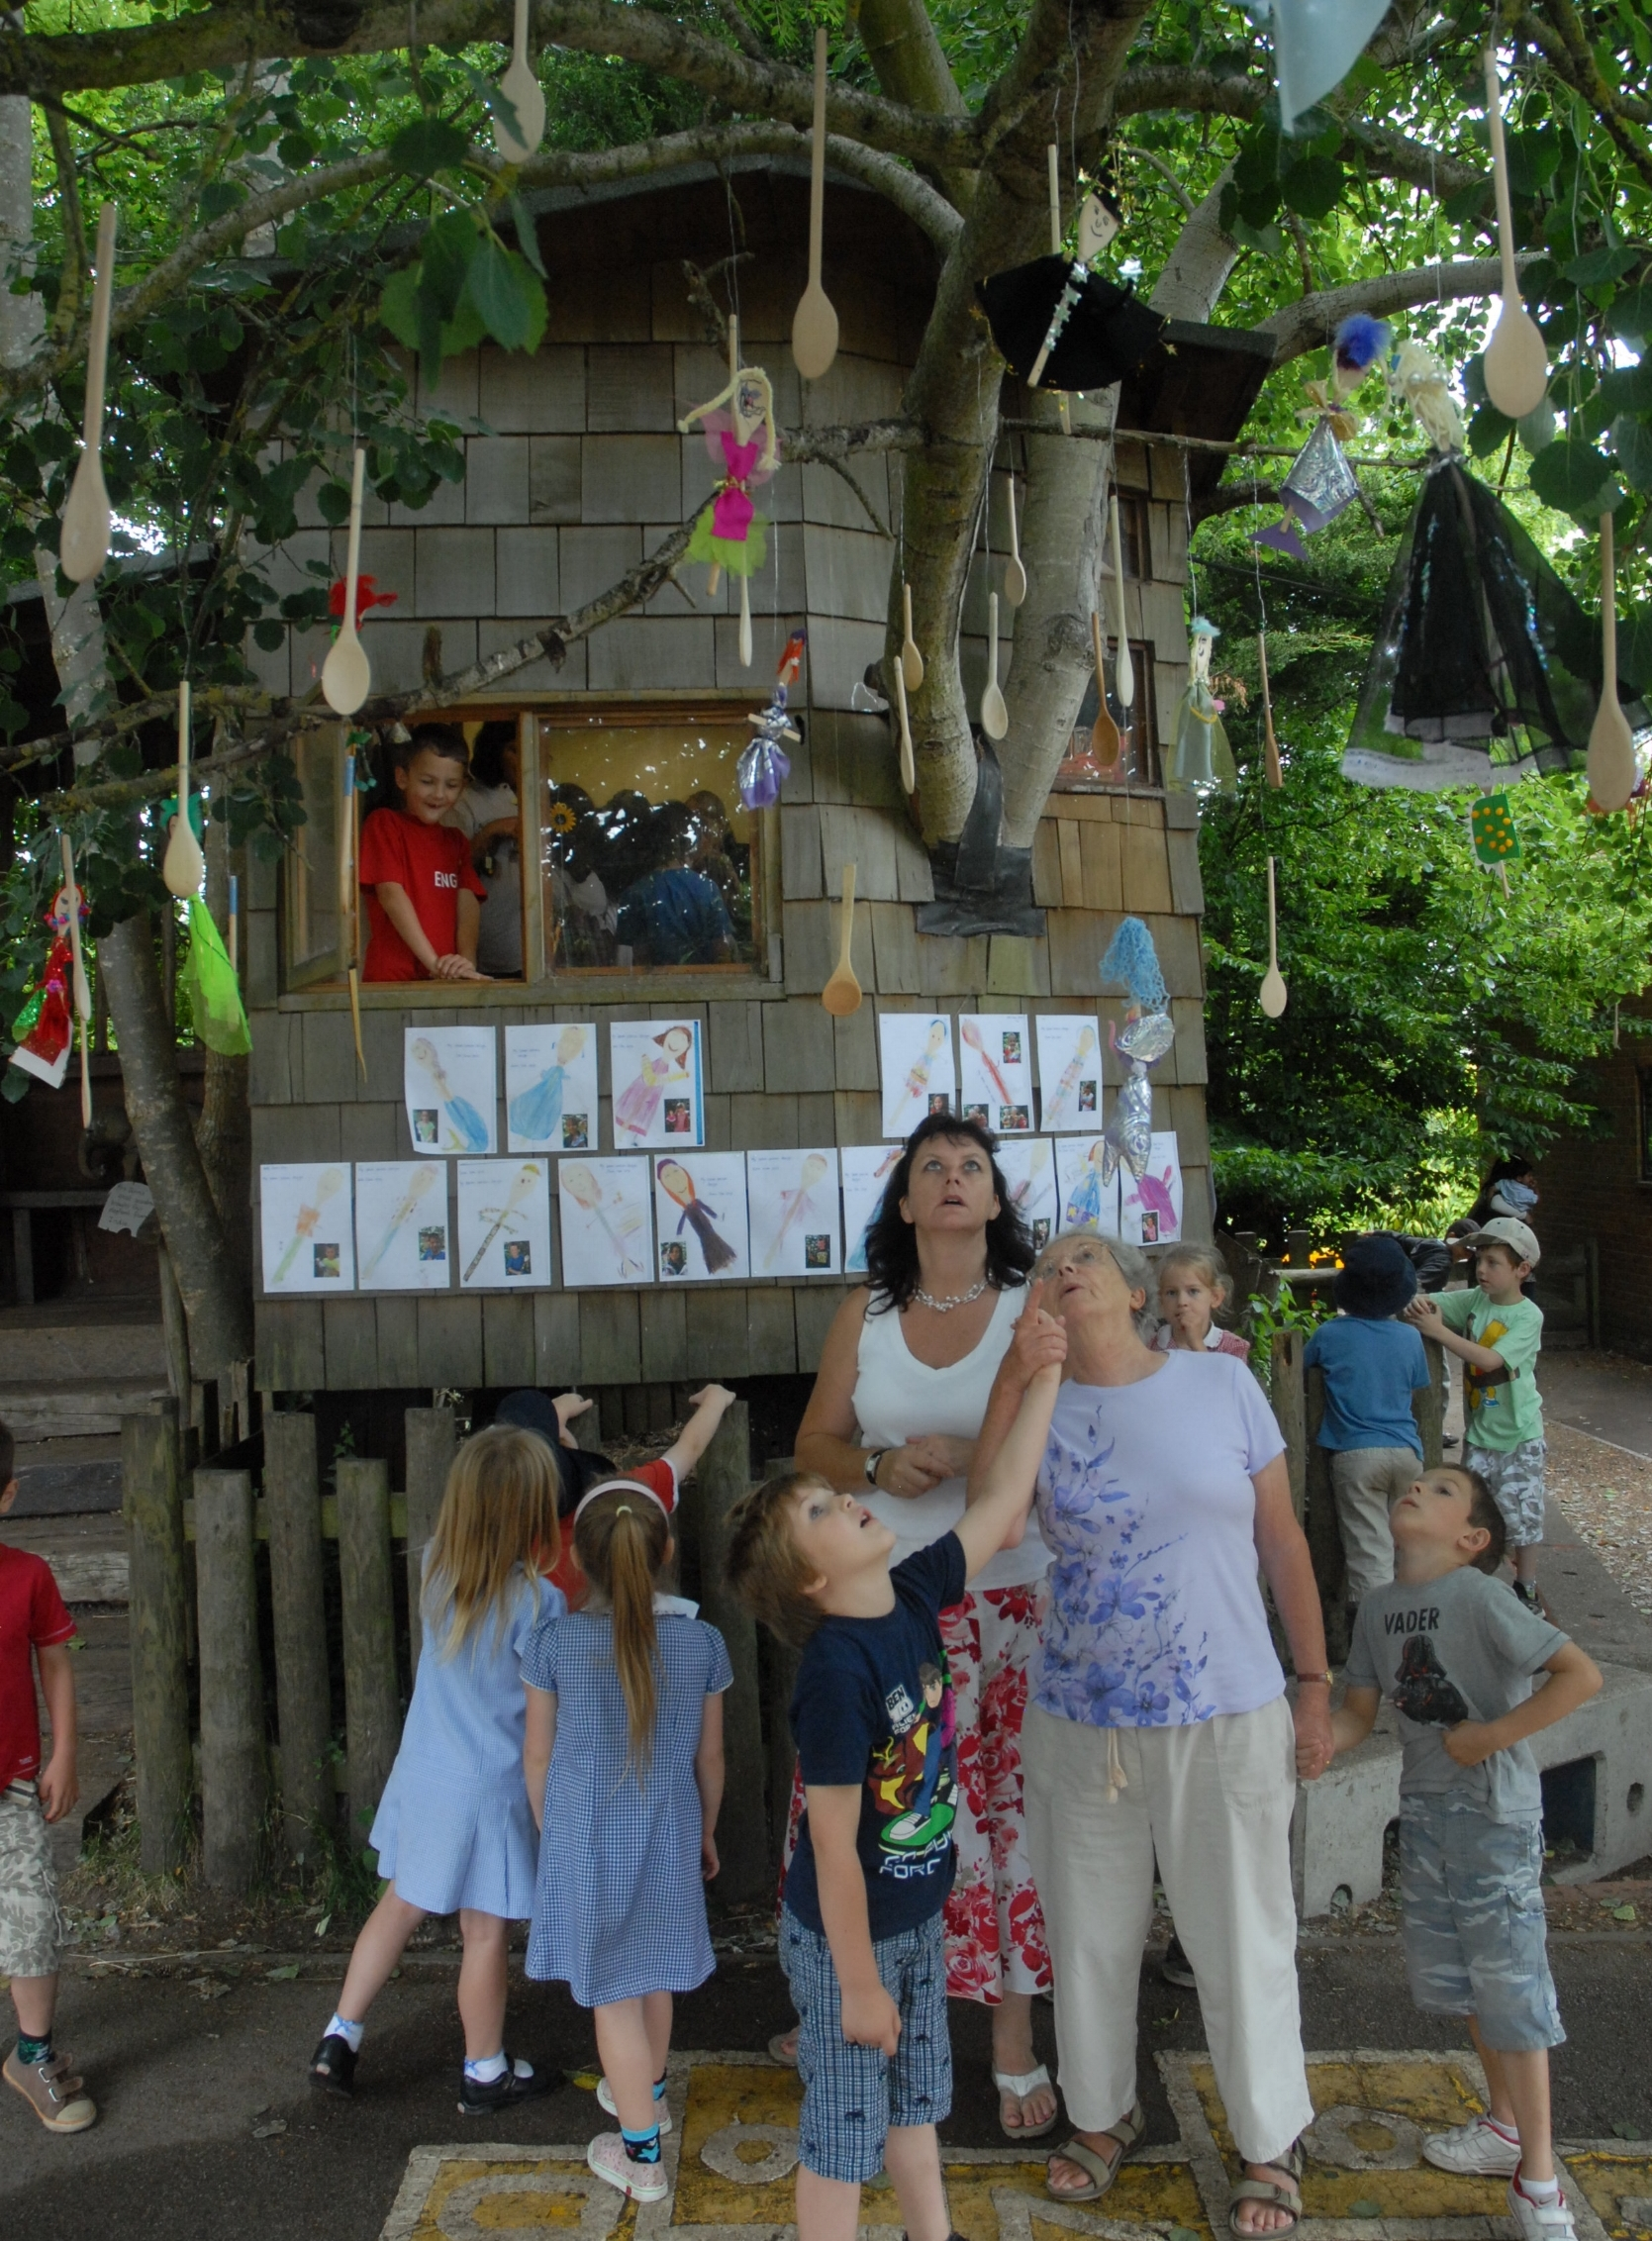 A treehouse at Coombes in years past.